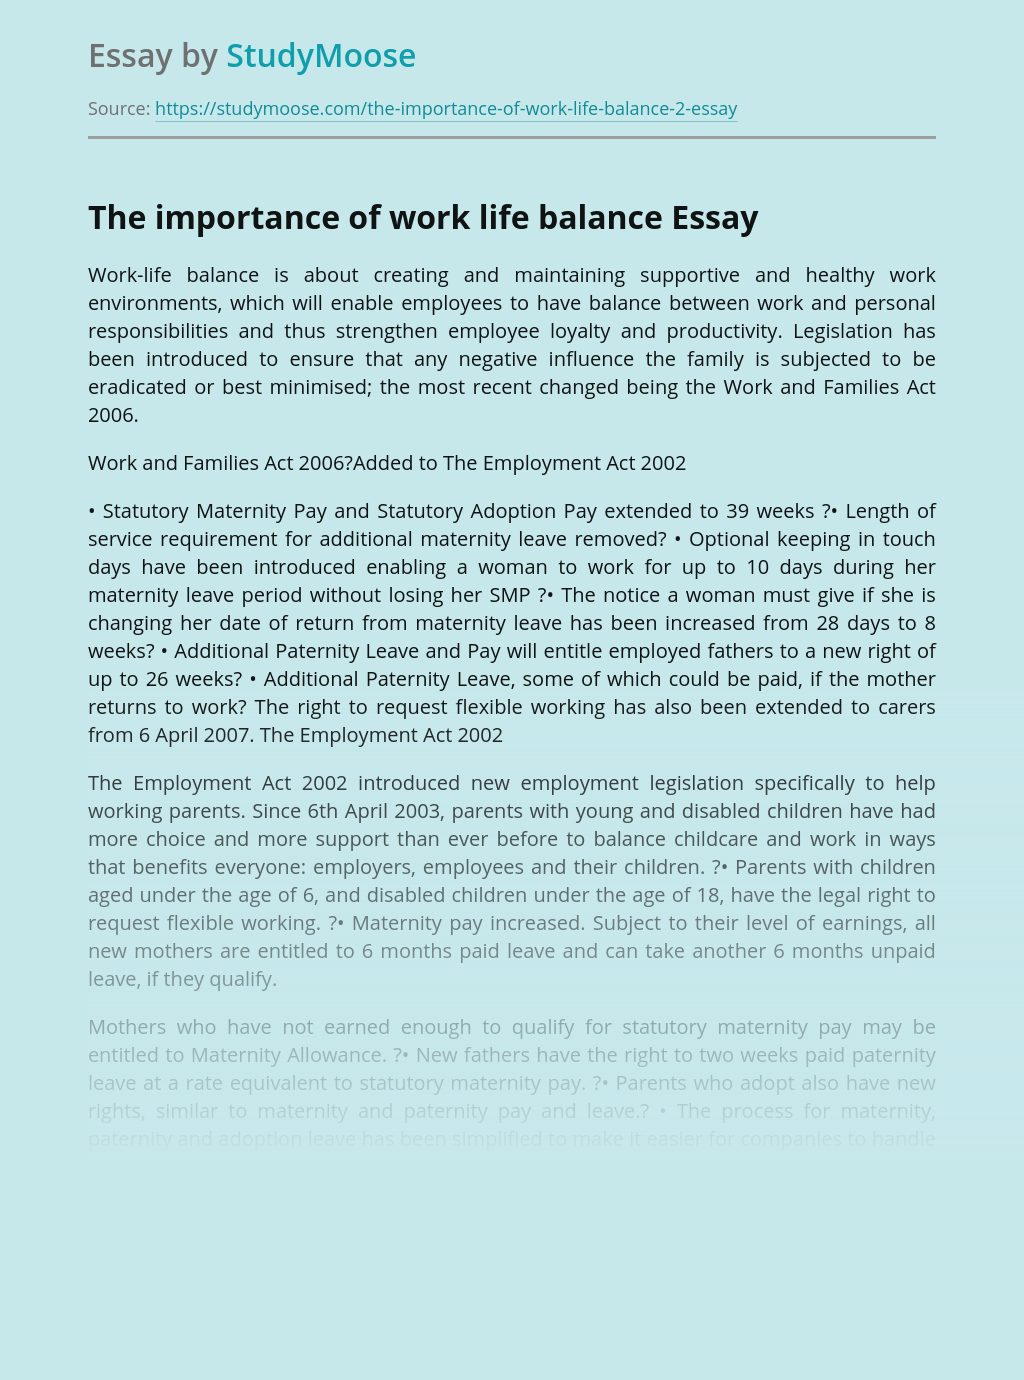 The importance of work life balance in work environments